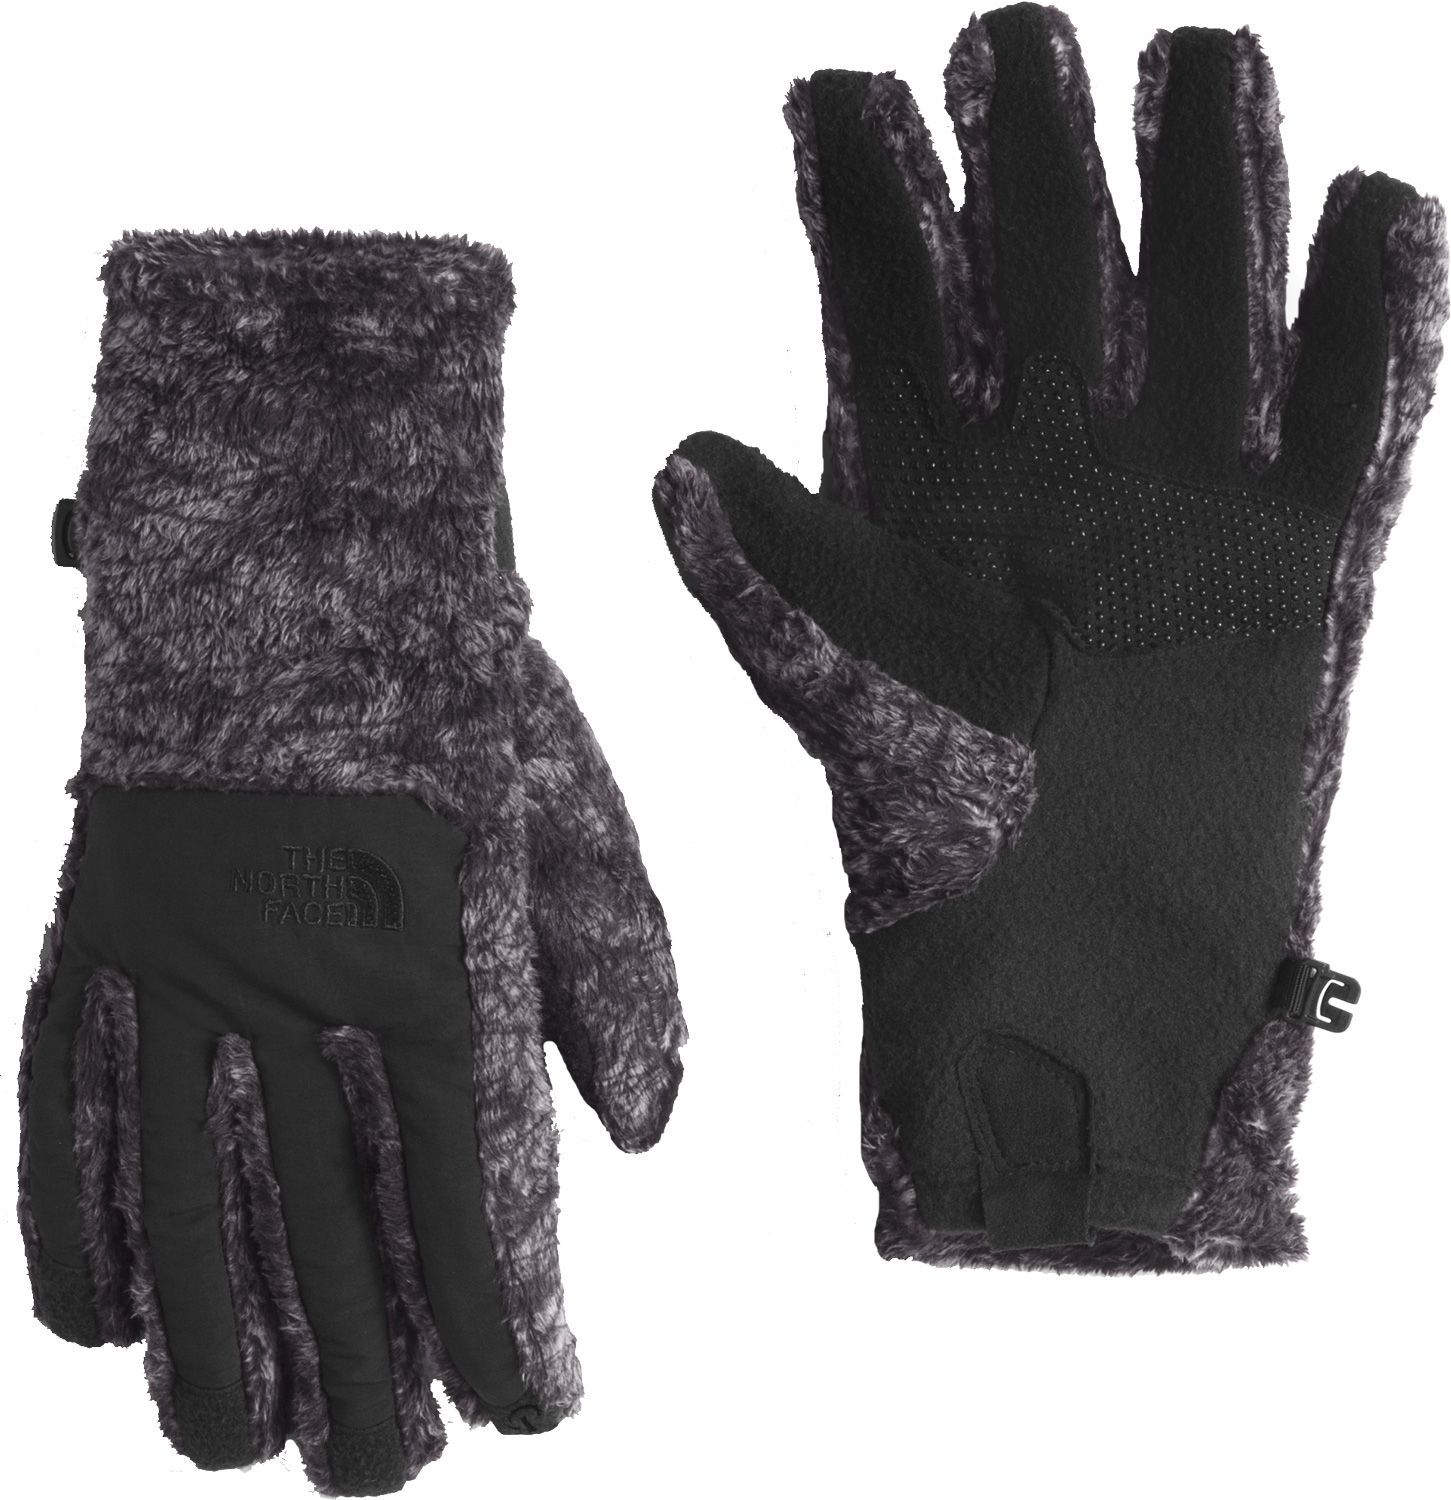 515d8245a The North Face Women's Denali Thermal Etip Gloves | DICK'S Sporting ...